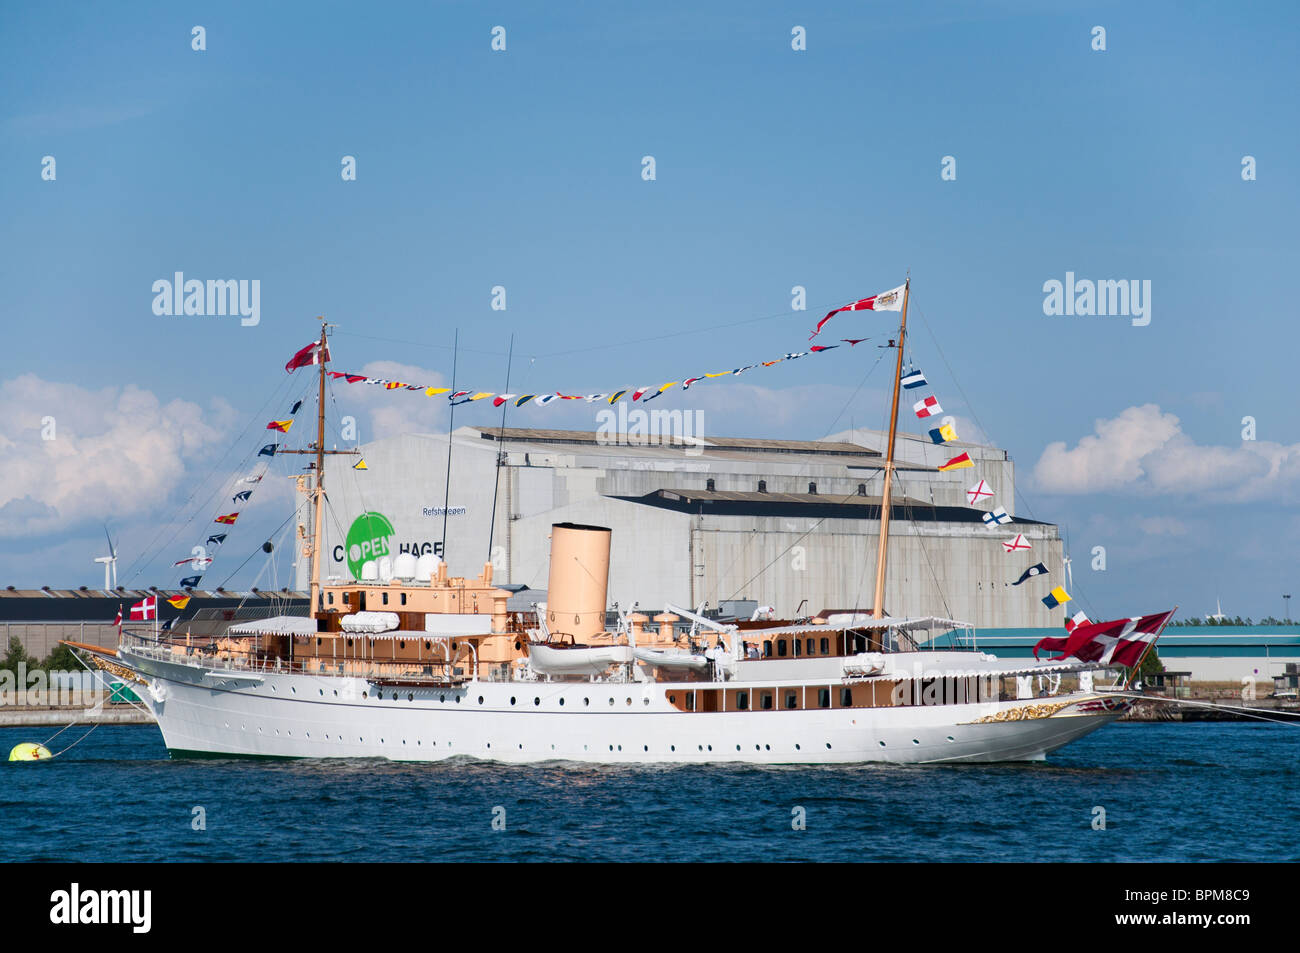 The (HDMY Dannebrog A540) Danish Royal Yacht anchored in the port of Copenhagen, Denmark during the 500 year anniversary. - Stock Image